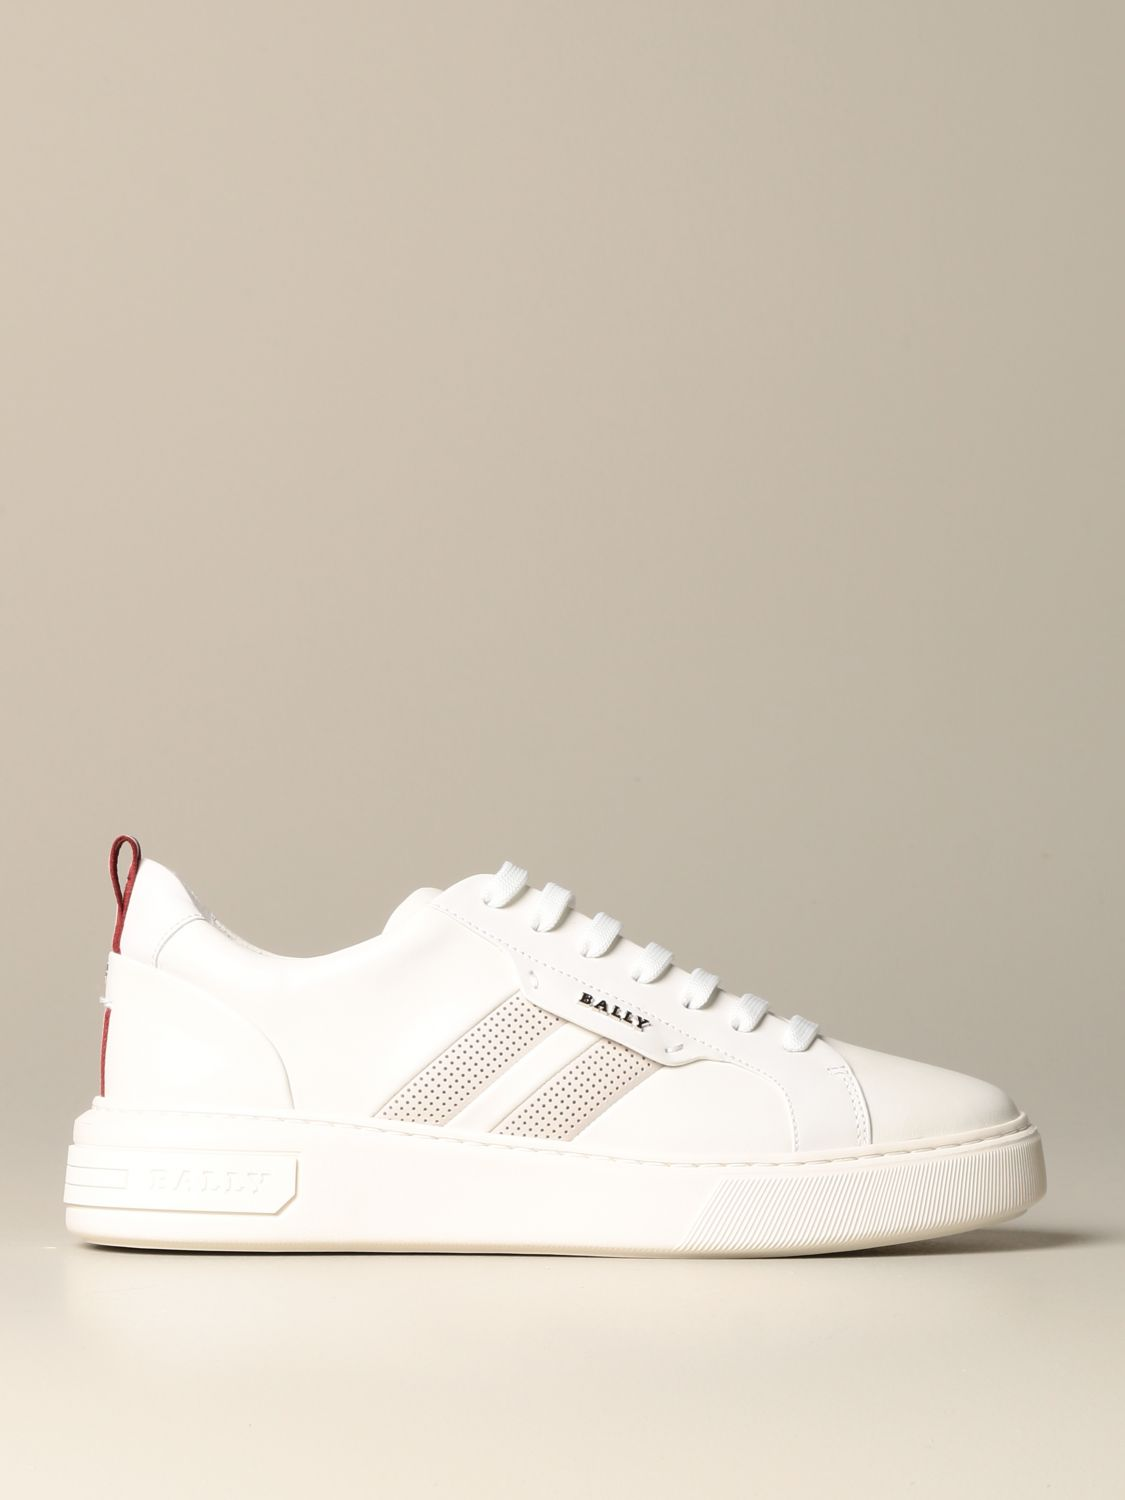 Sneakers Bally: Maxim Bally sneakers in leather with trainspotting band white 1